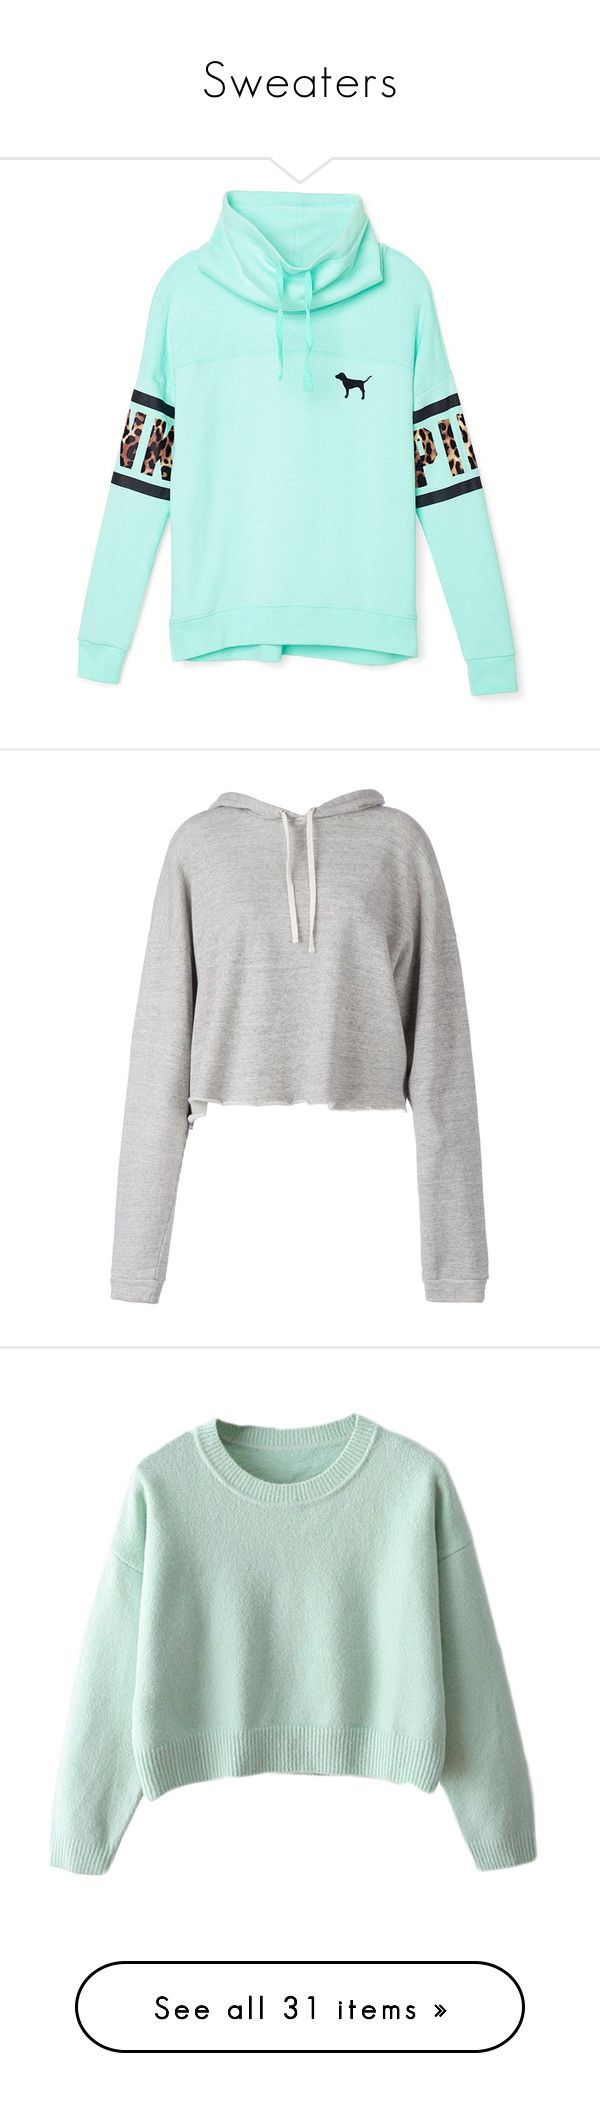 """Sweaters"" by realbeauti on Polyvore featuring tops, hoodies, sweatshirts, sweaters, jackets, shirts, blue hoodie, hooded sweatshirt, cowl neck hoodie and pullover sweatshirts"